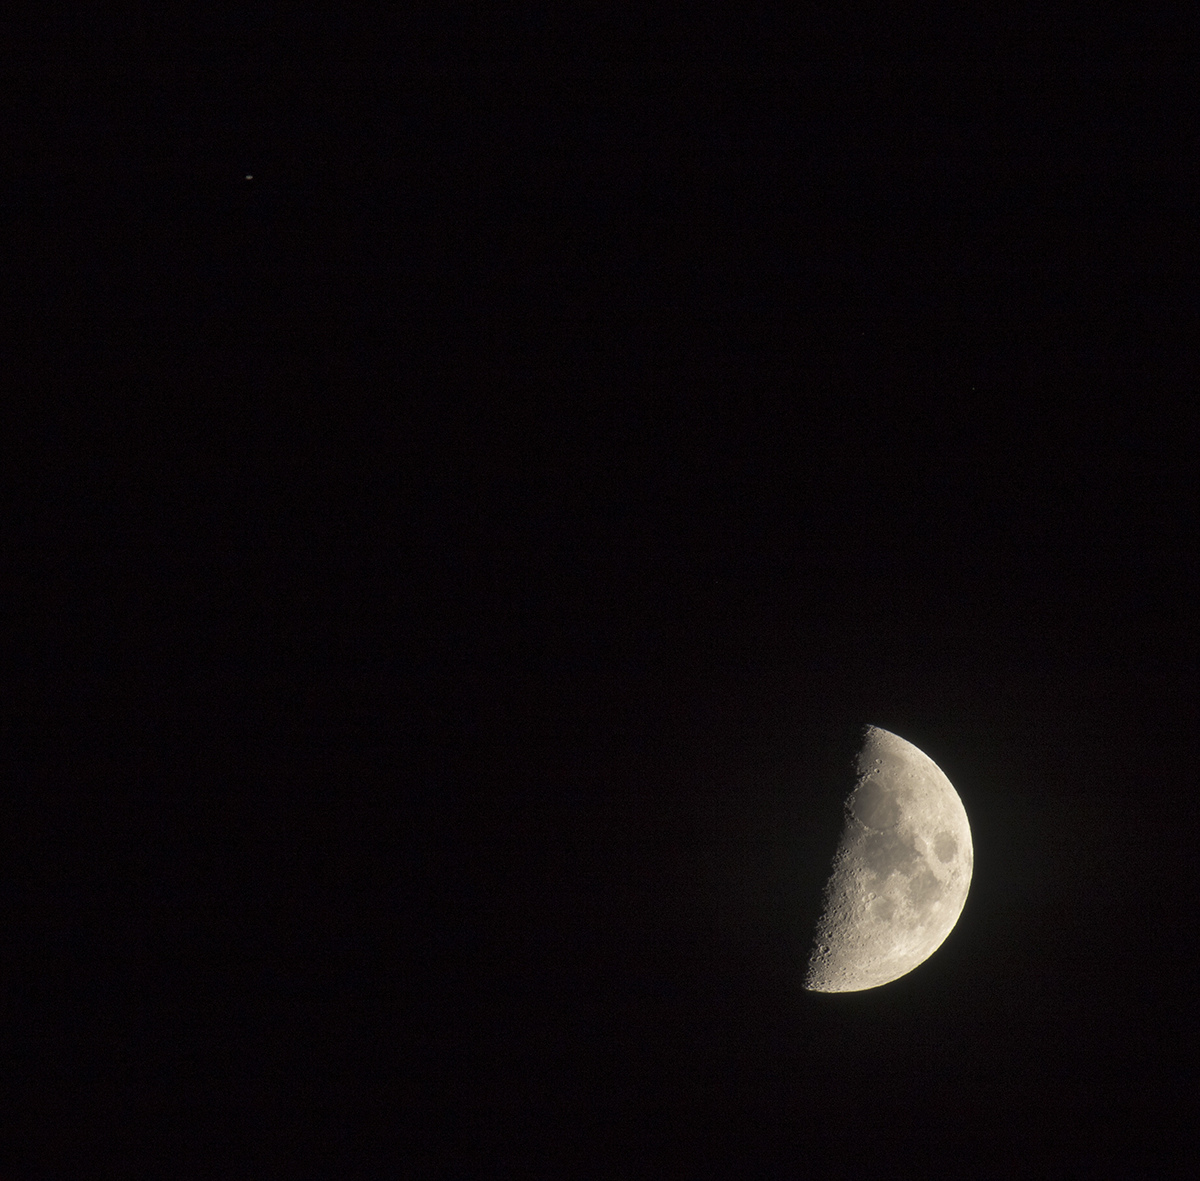 la lune le 04/10/2019  (42050raw jpeg)